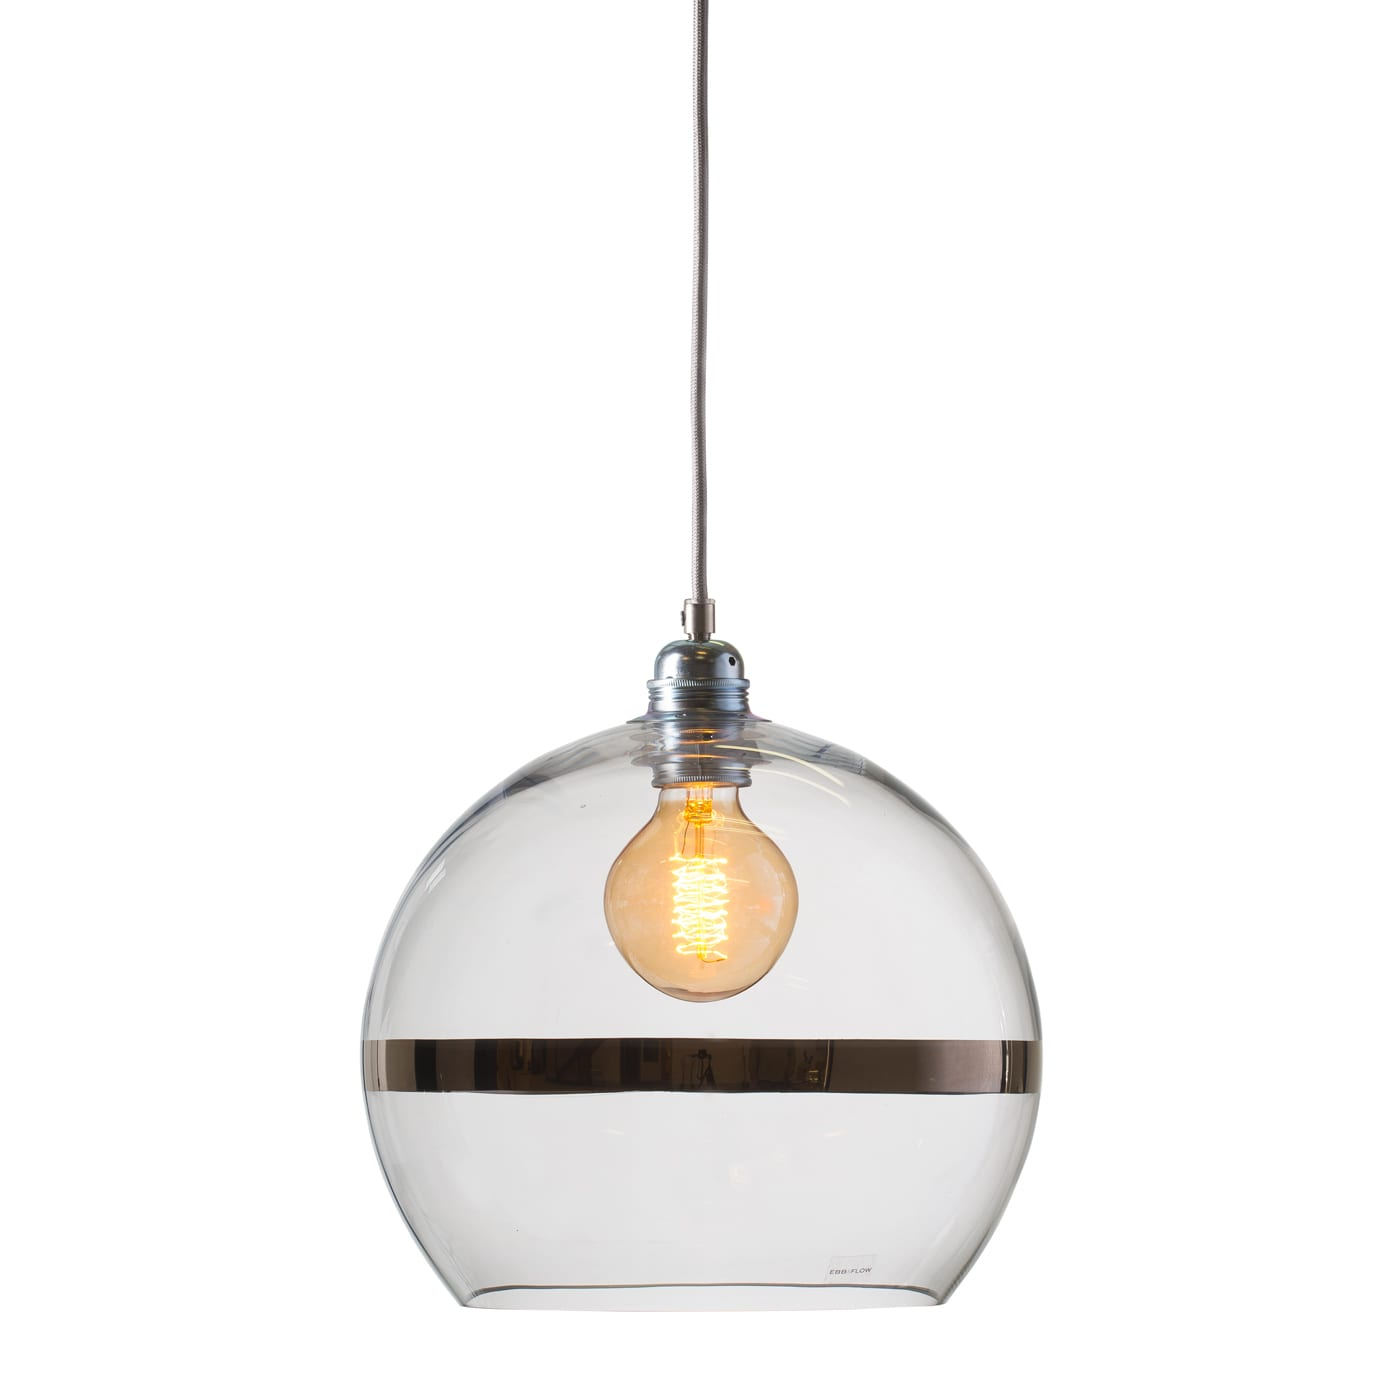 Rowan pendant lamp, platinum stripe on clear, 28cm